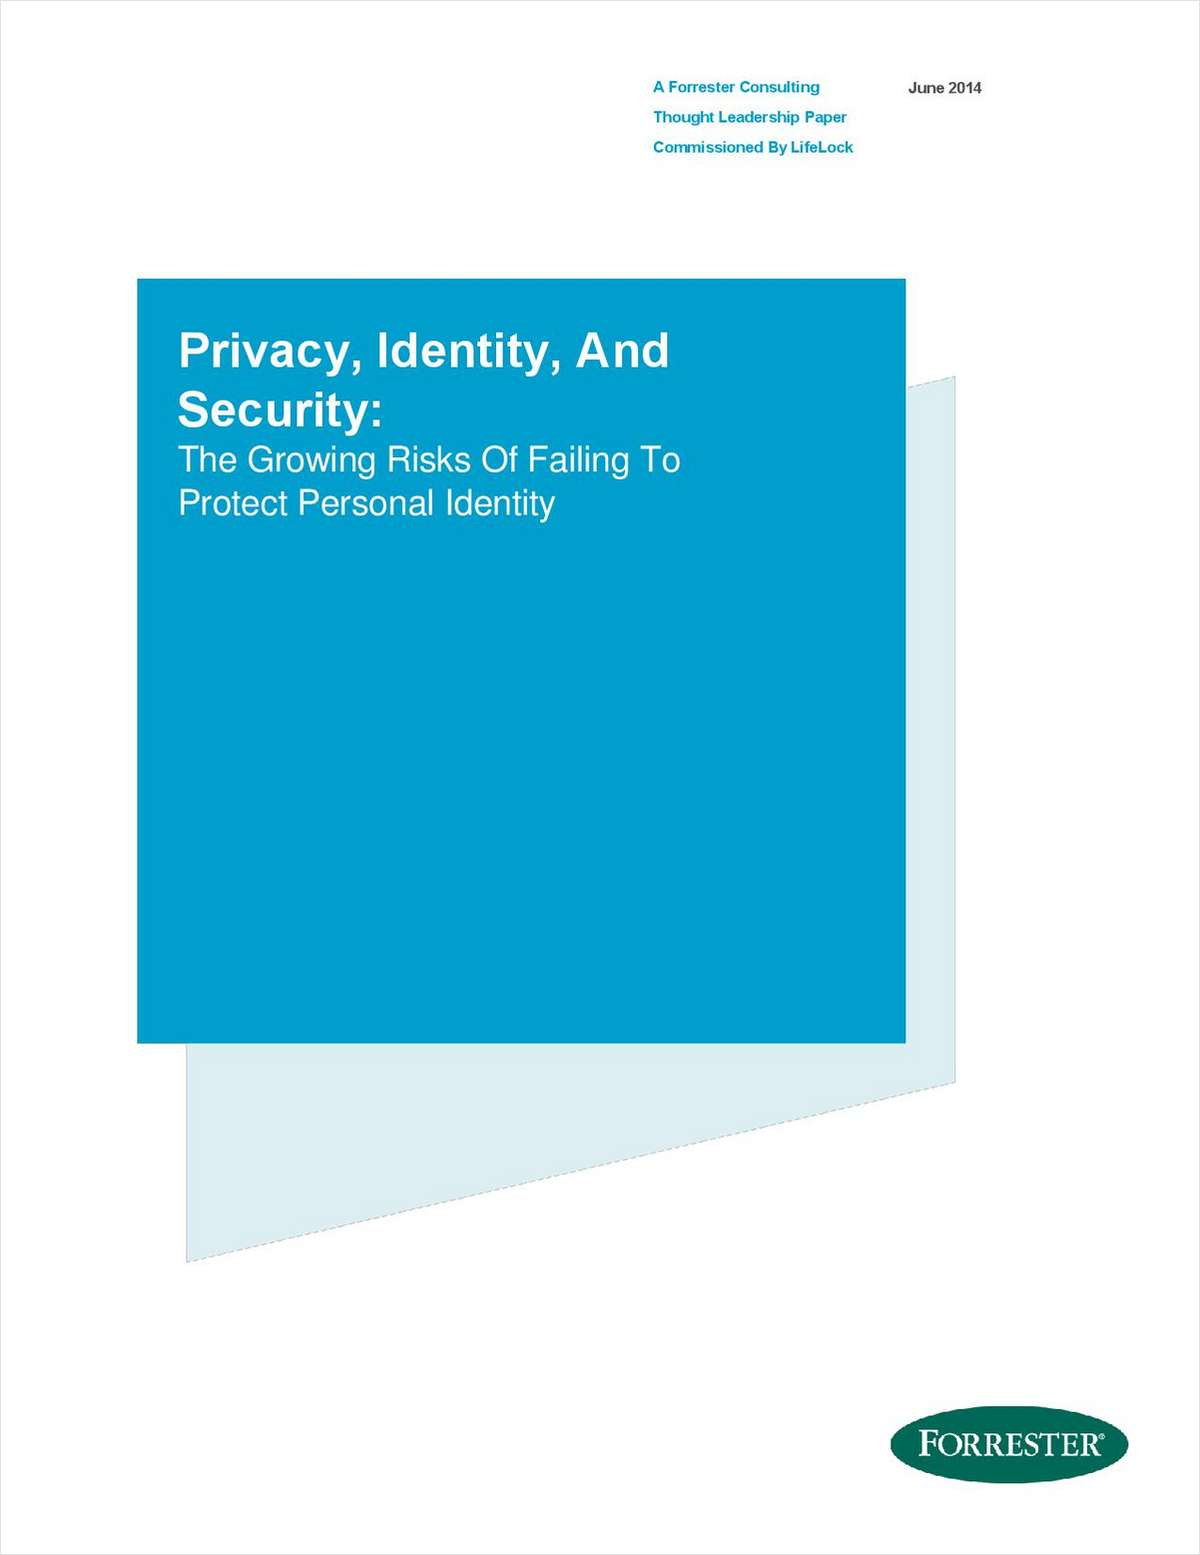 Privacy, Identity, and Security: The Growing Risks of Failing to Protect Personal Identity